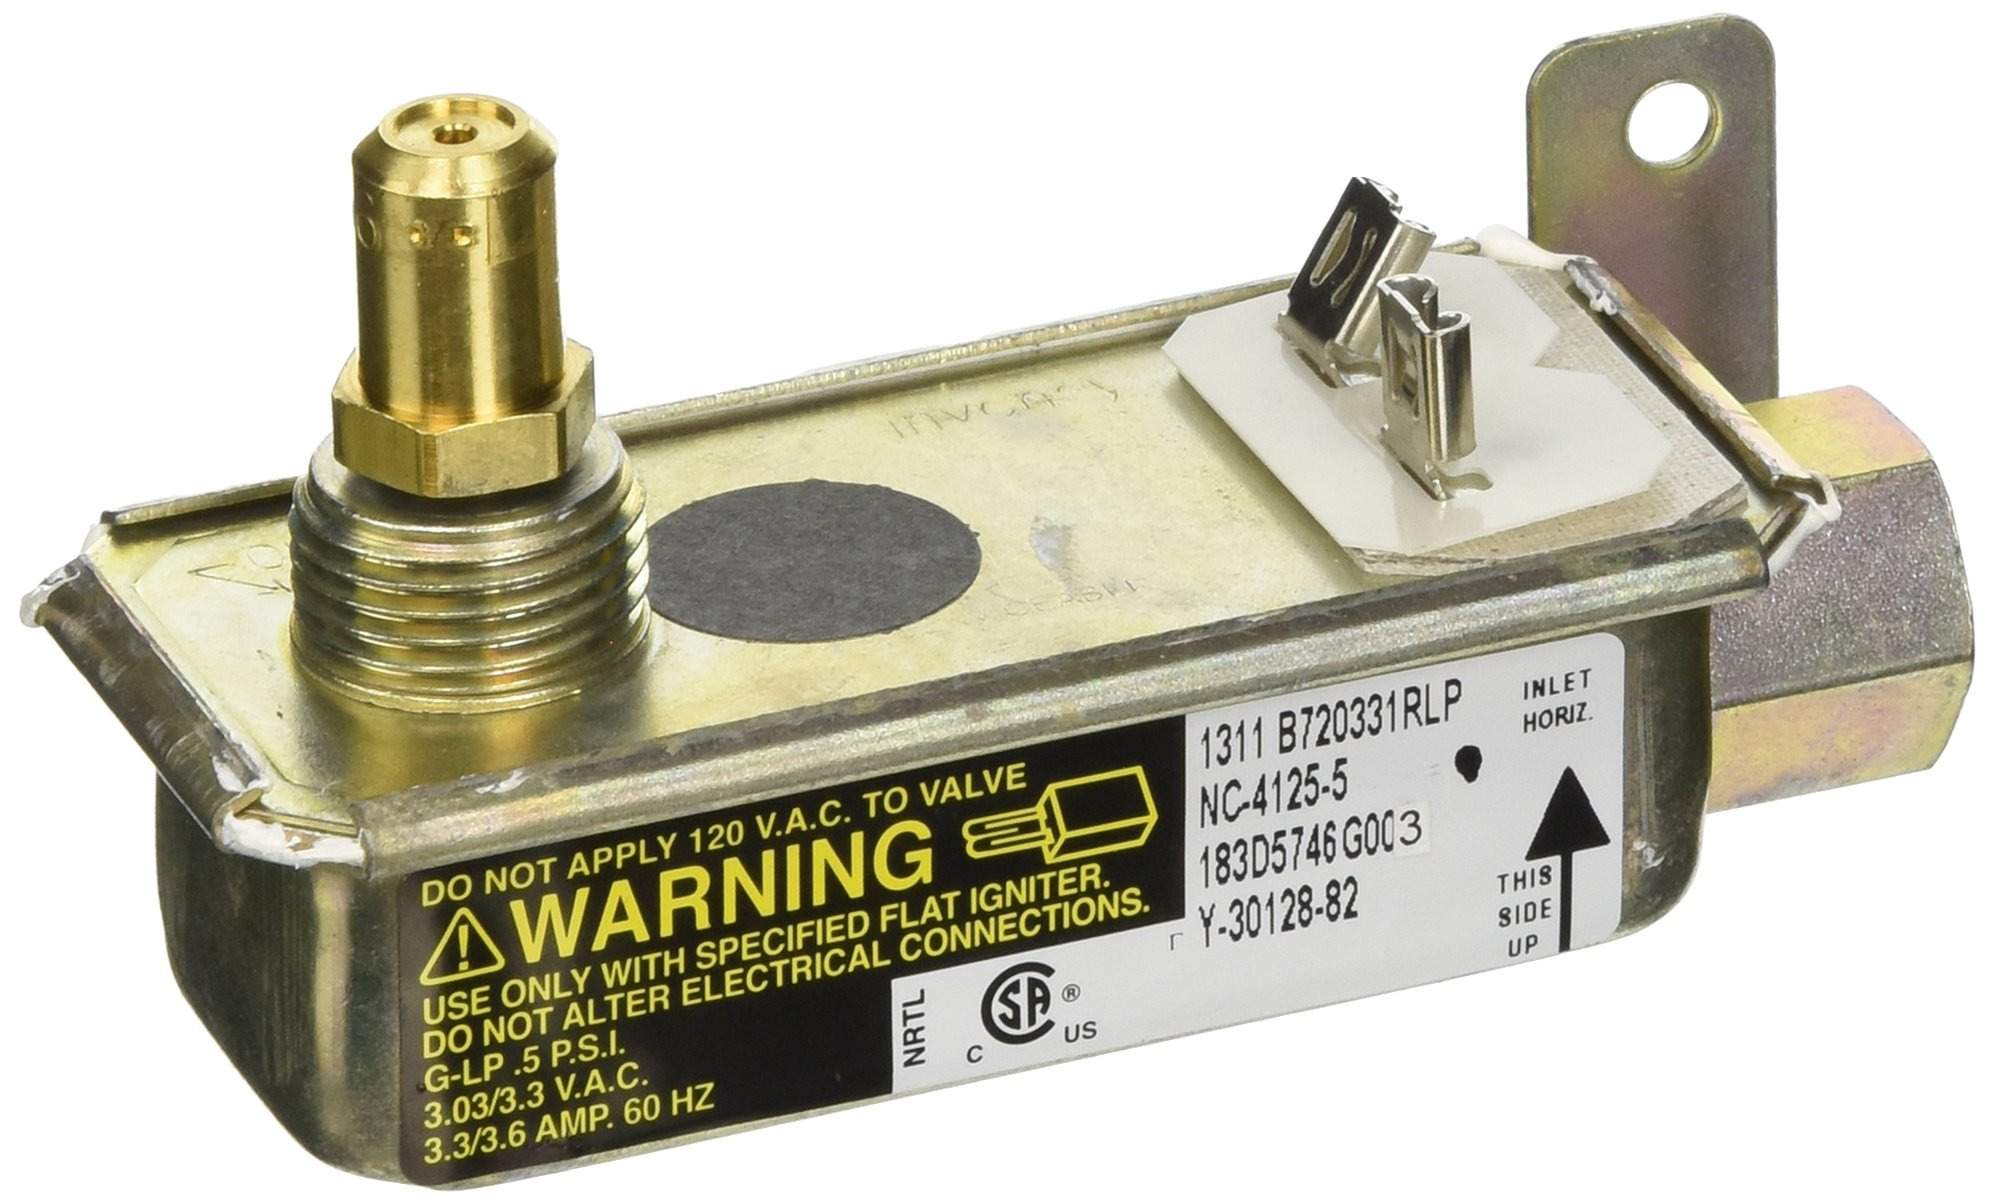 General Electric WB19K10006 Oven Safety Valve